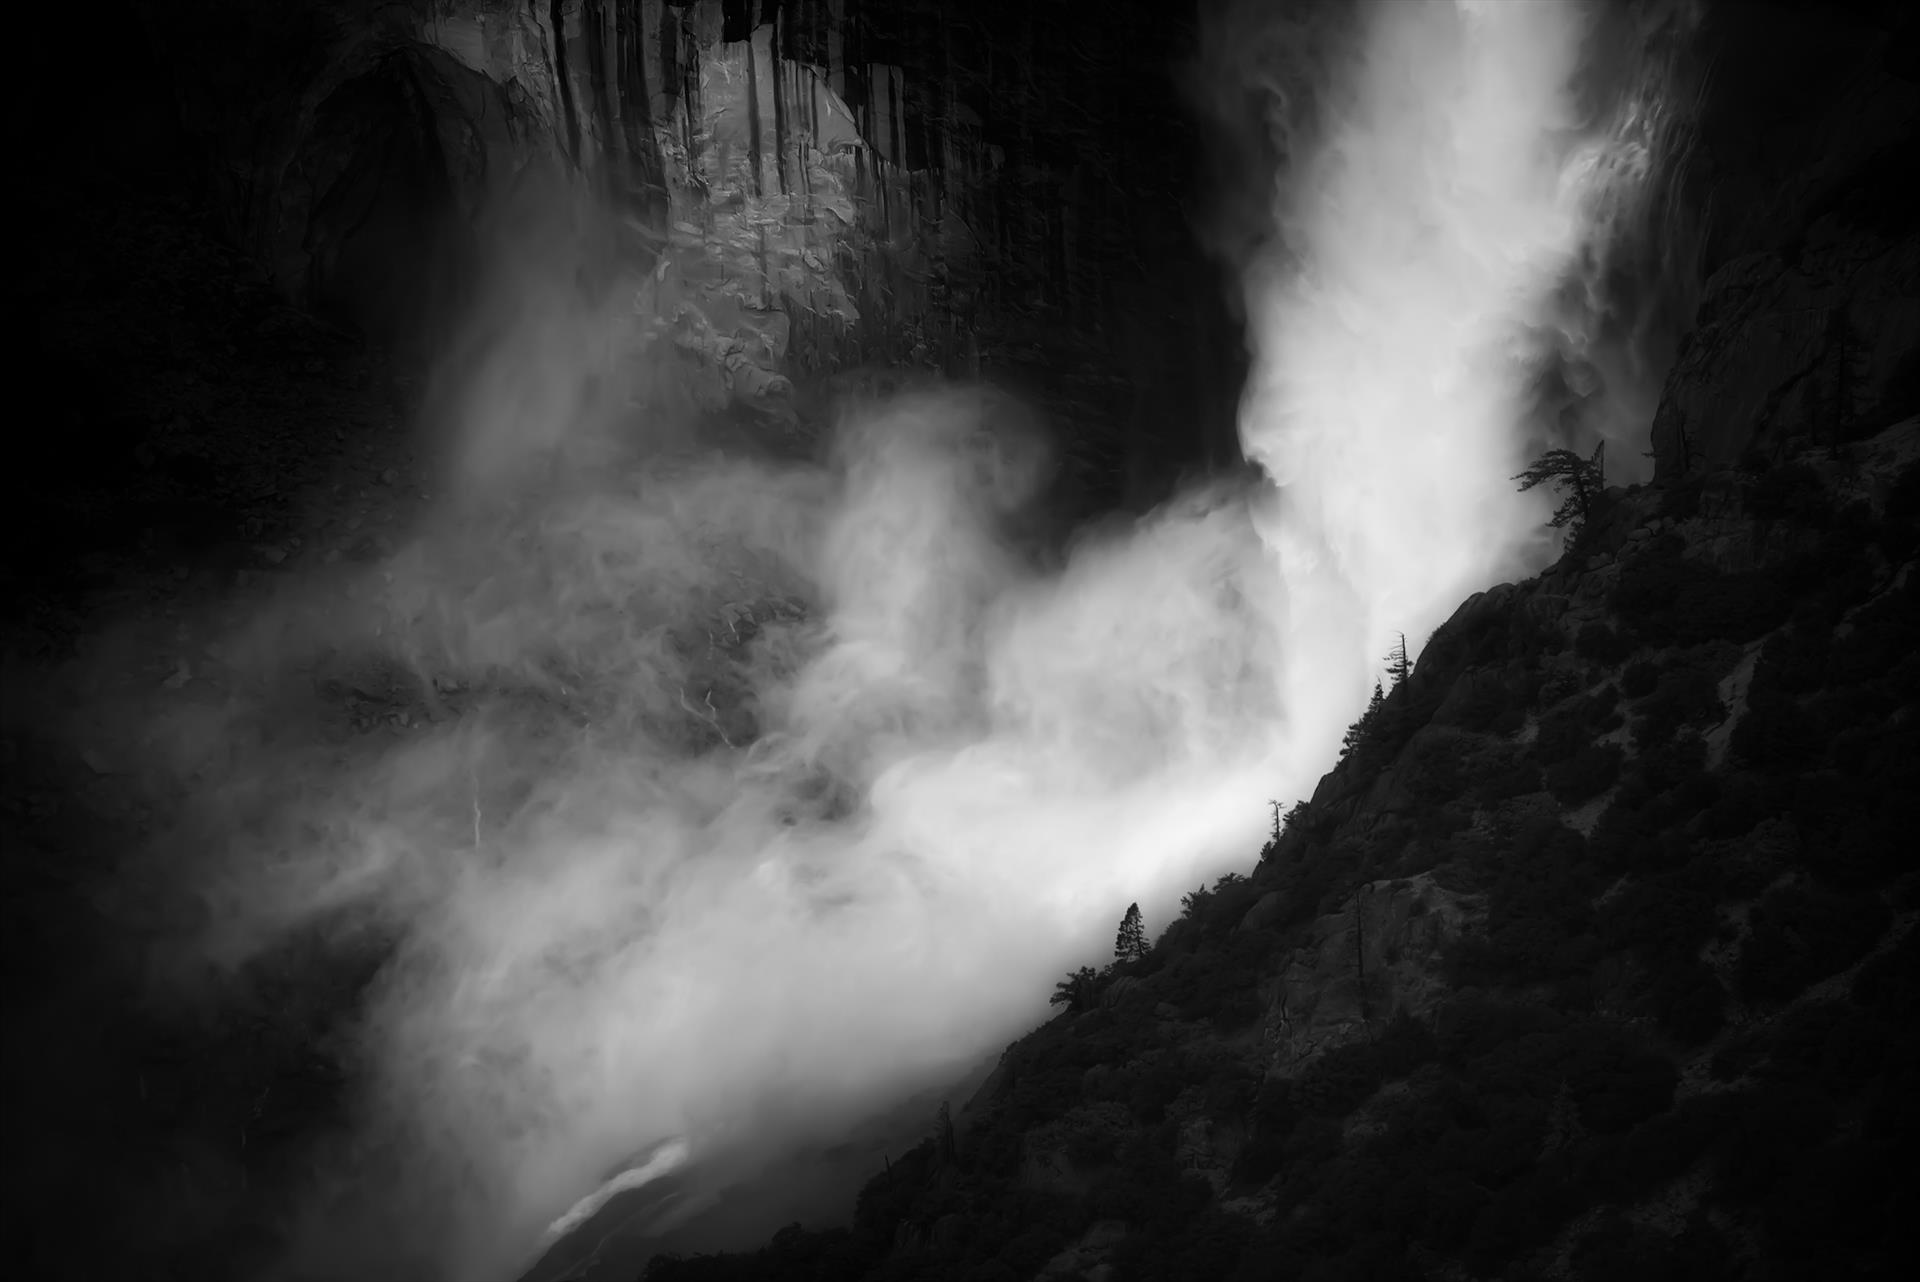 8689-upper_yosemite_fall_spray-1113201619-39923.jpg